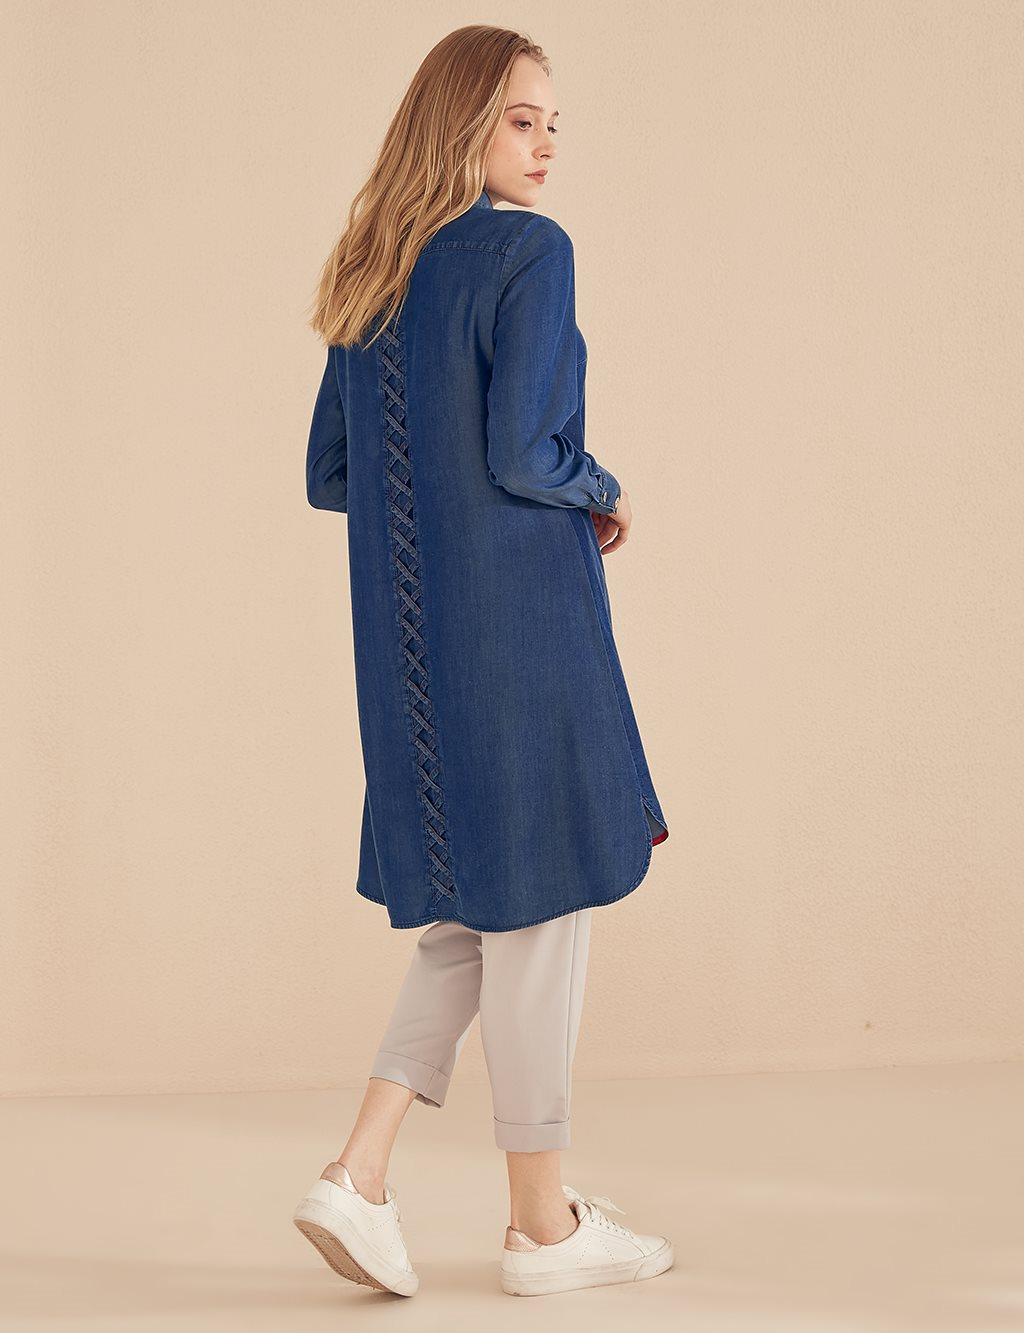 Basic Detailed Tunic B20 21115 Indigo